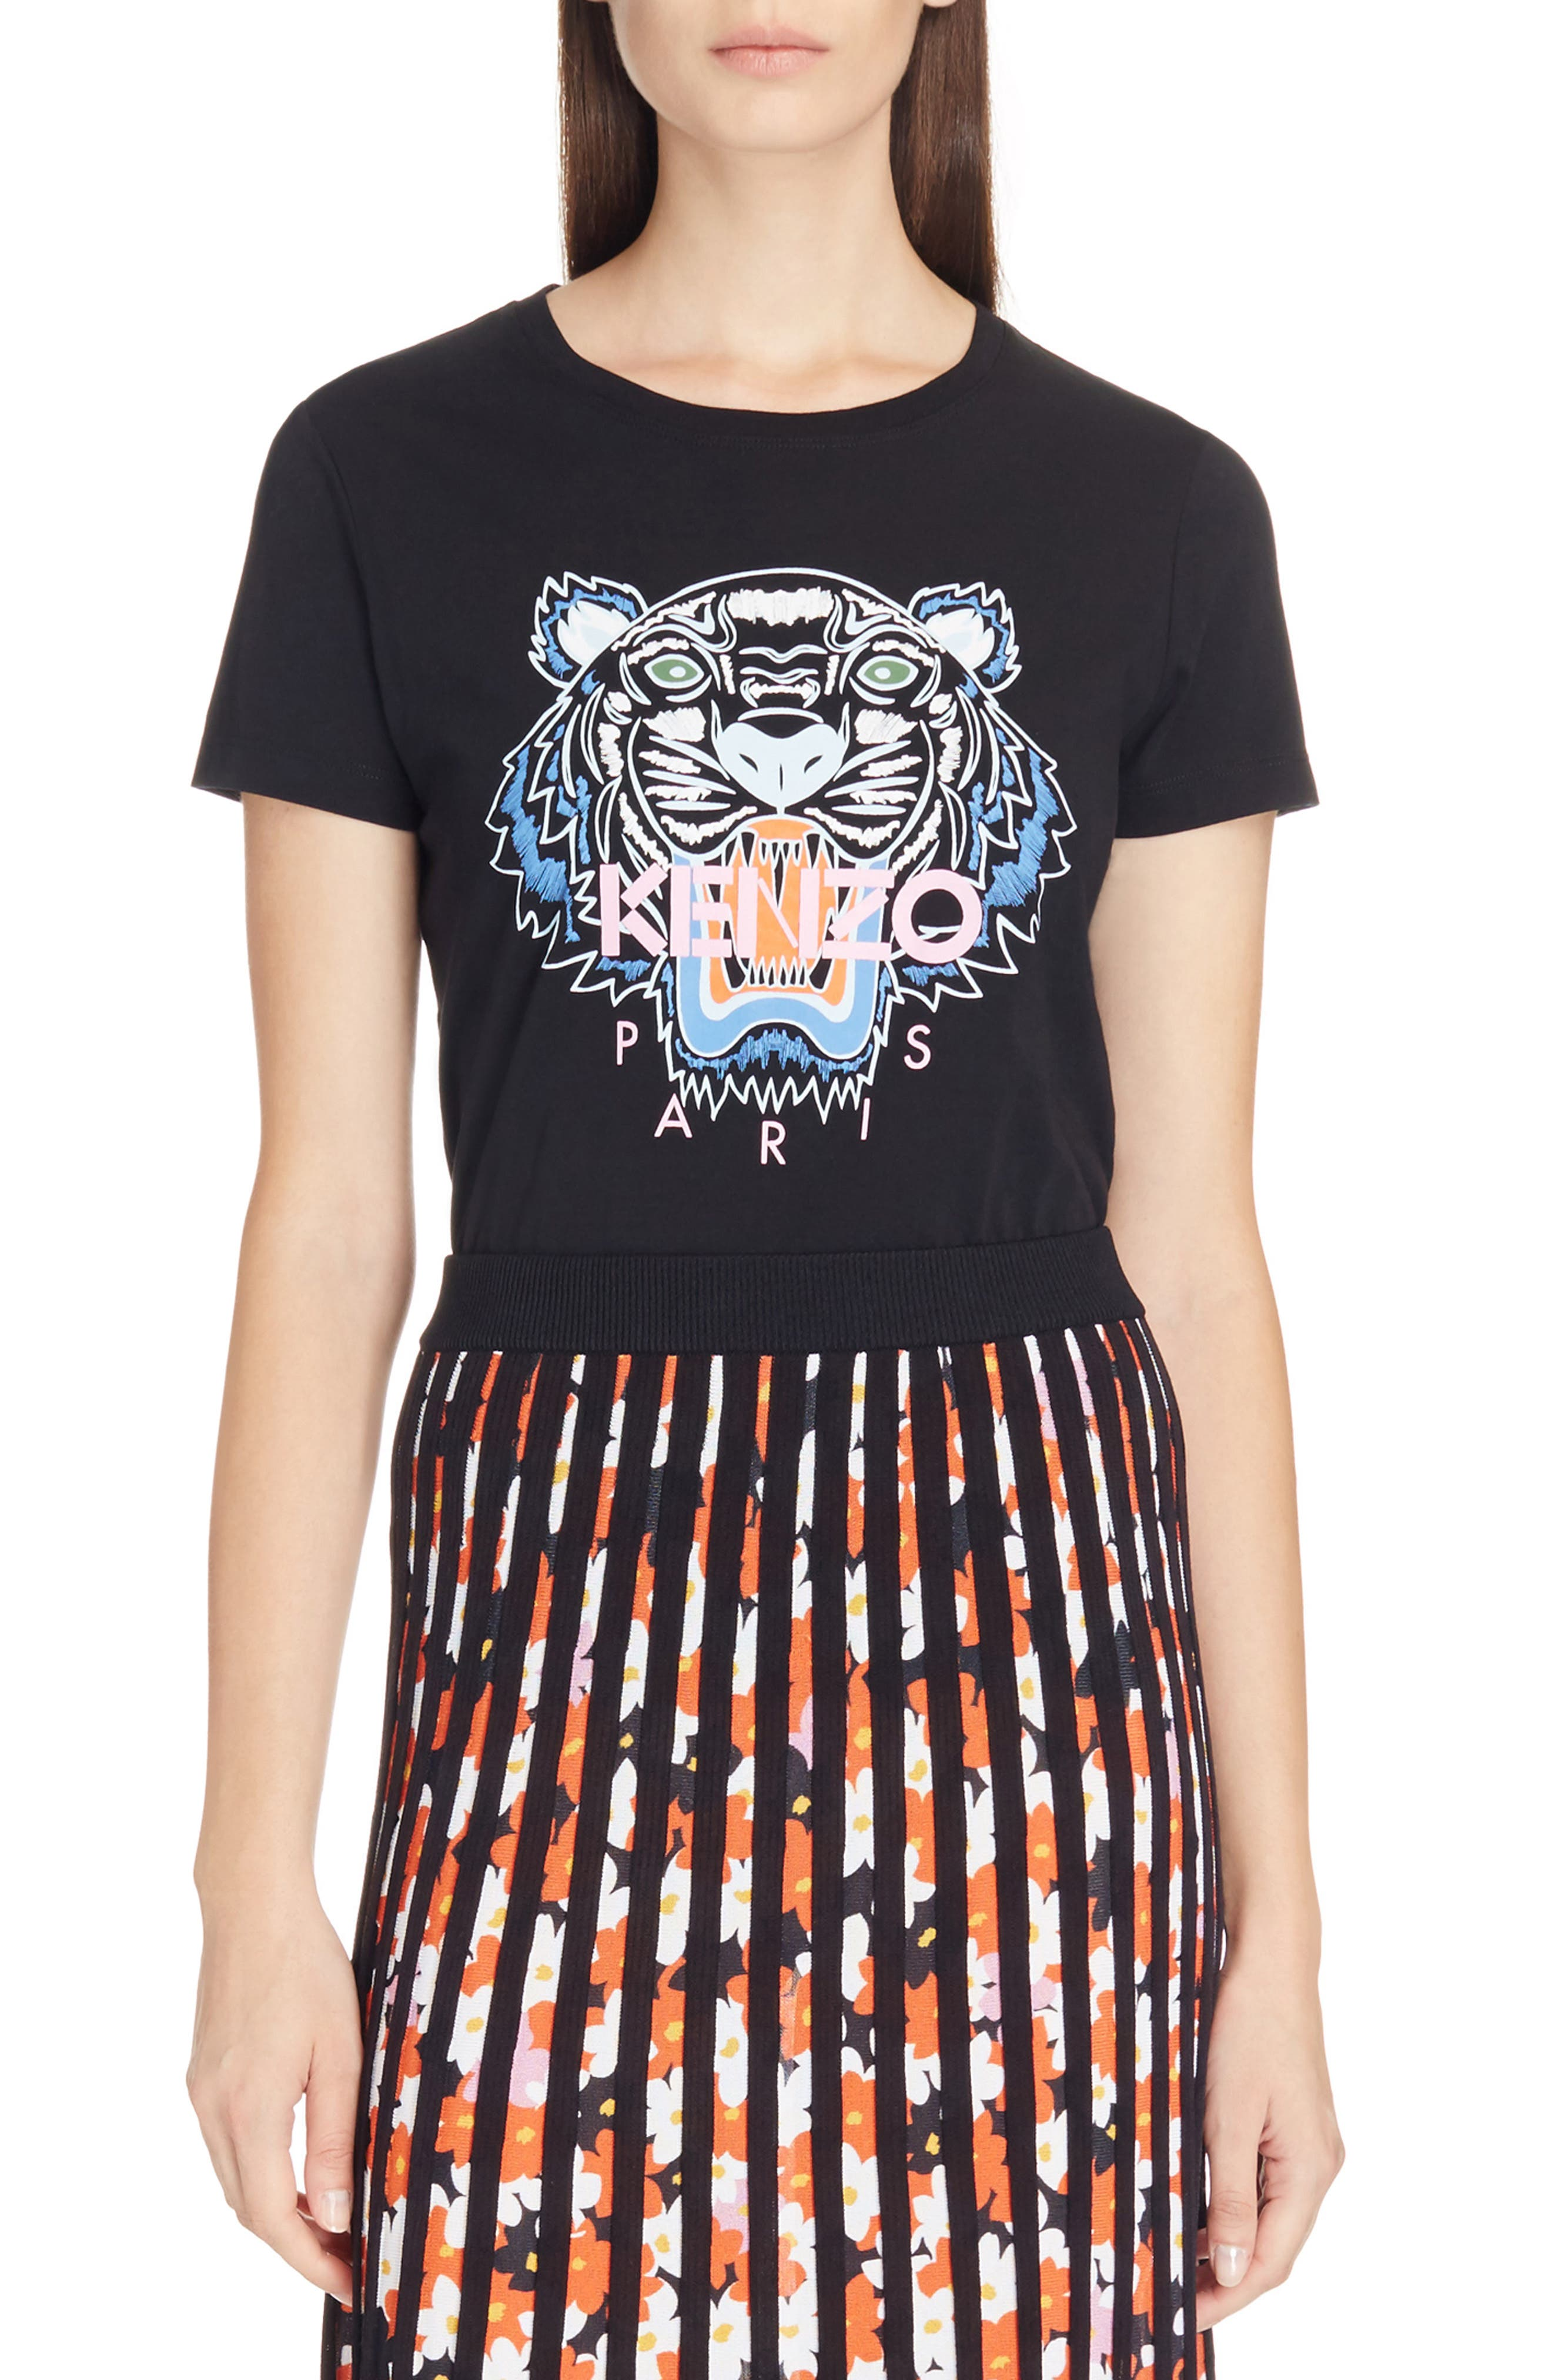 KENZO Classic Tiger Graphic Tee